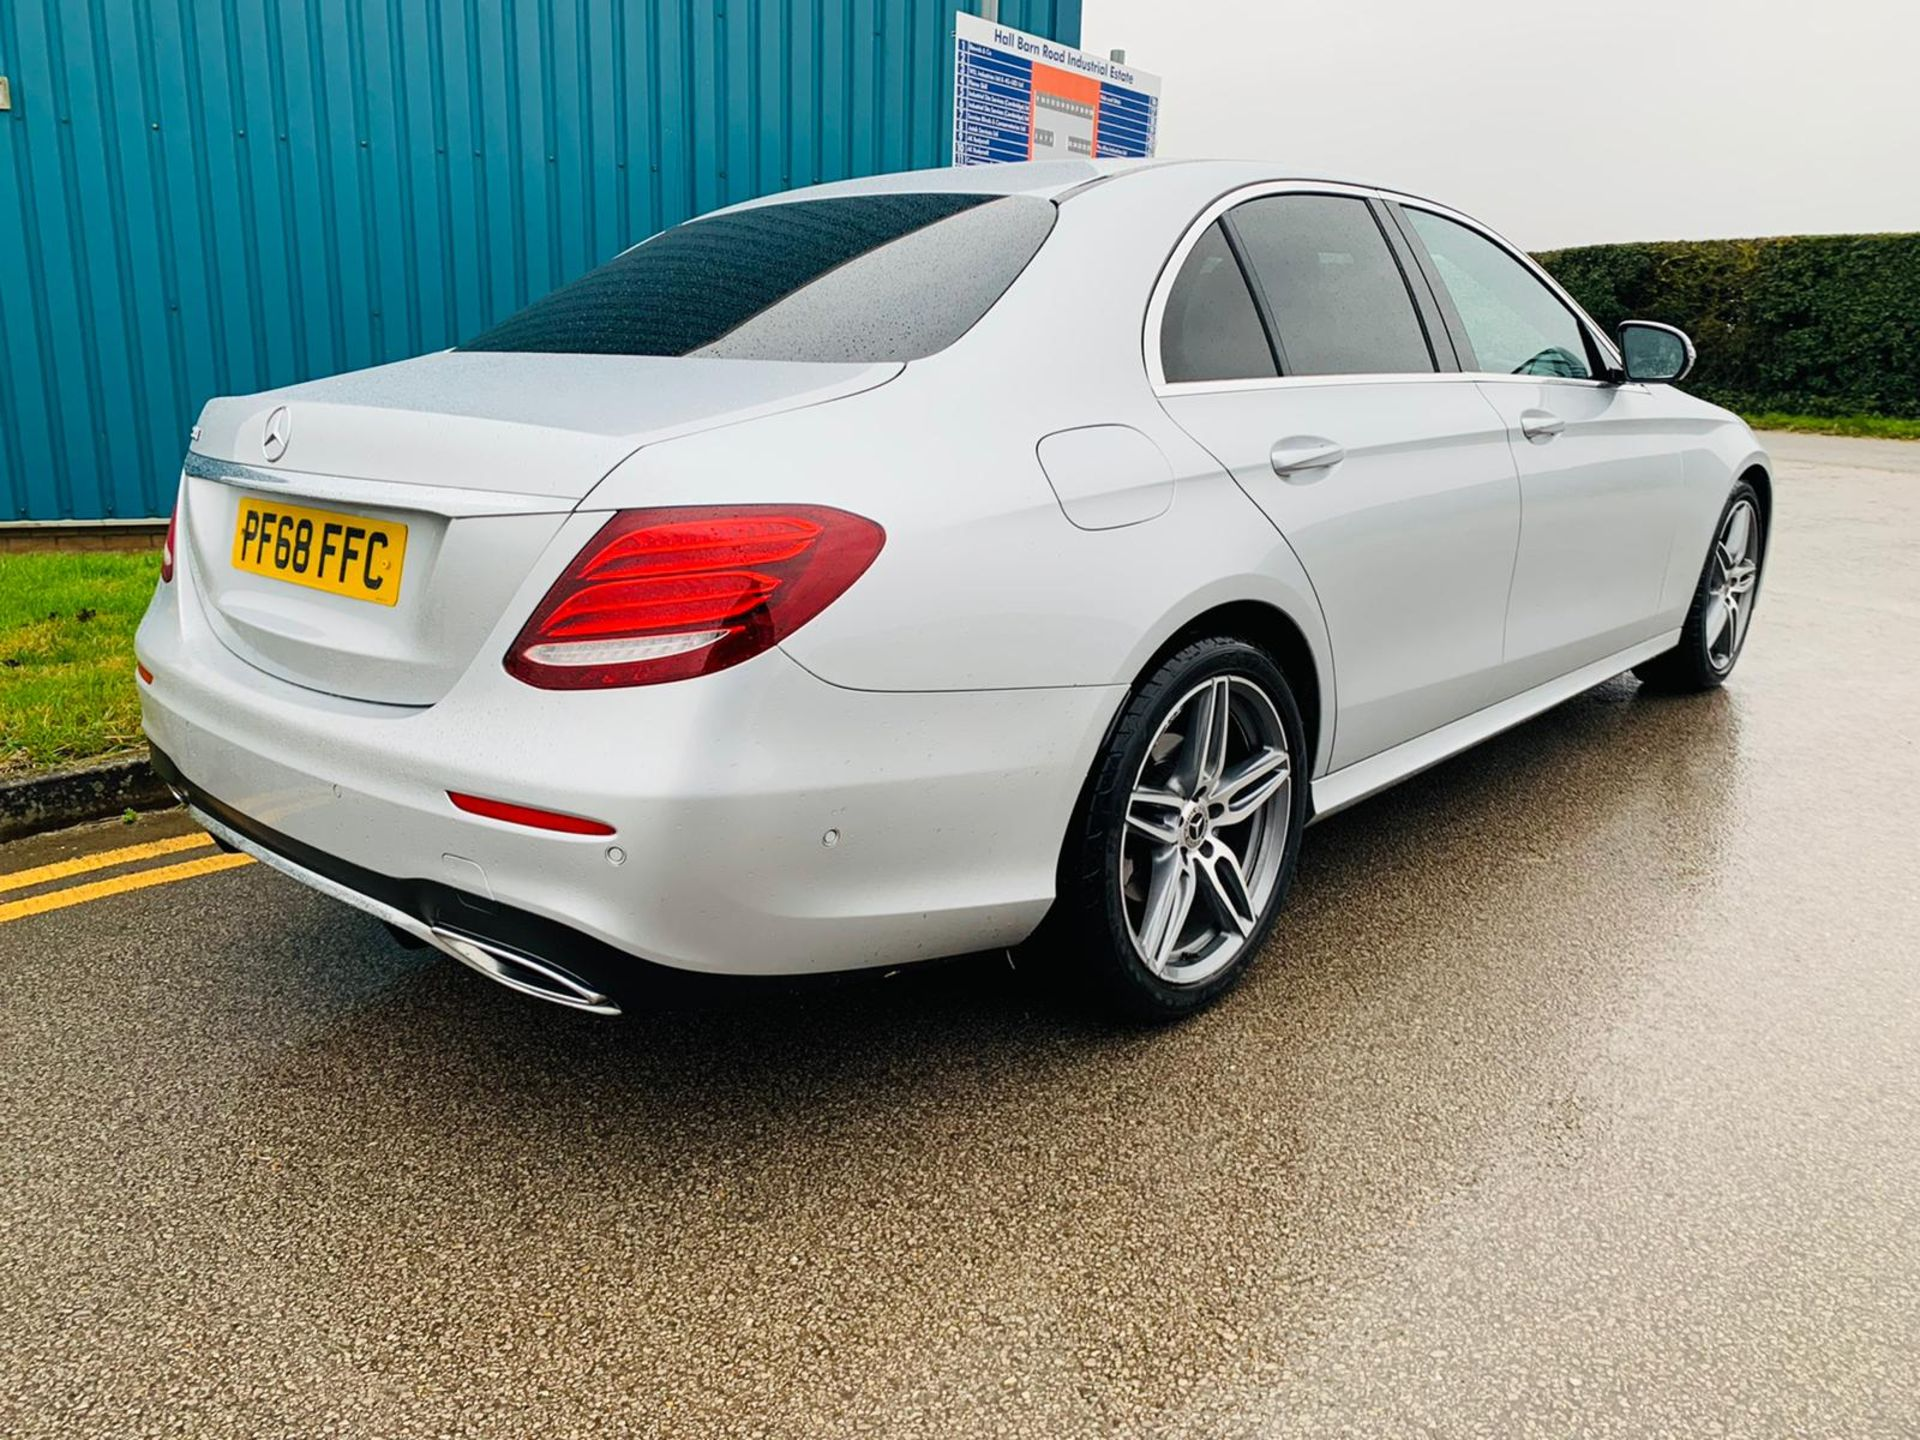 (Reserve Met)Mercedes E220d AMG Line Auto 9G Tronic - 2019 Reg - Reversing Cam - 1 Owner From New - Image 7 of 30